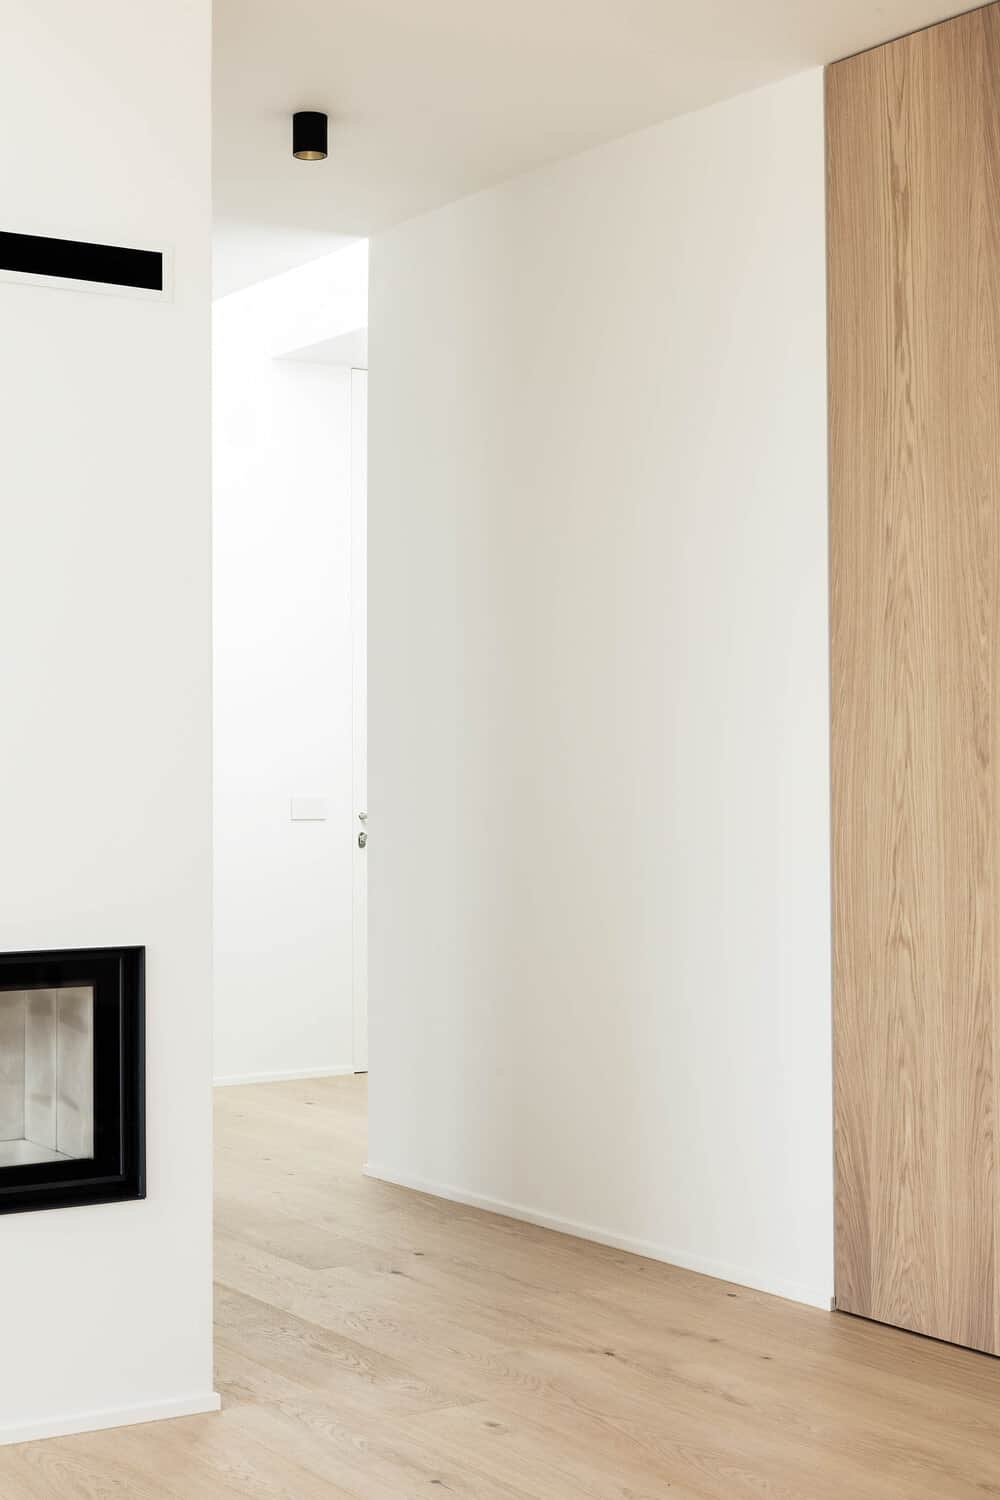 The bright tones of the walls inside the house makes the black stand out that pairs well with the wooden panels and hardwood flooring.